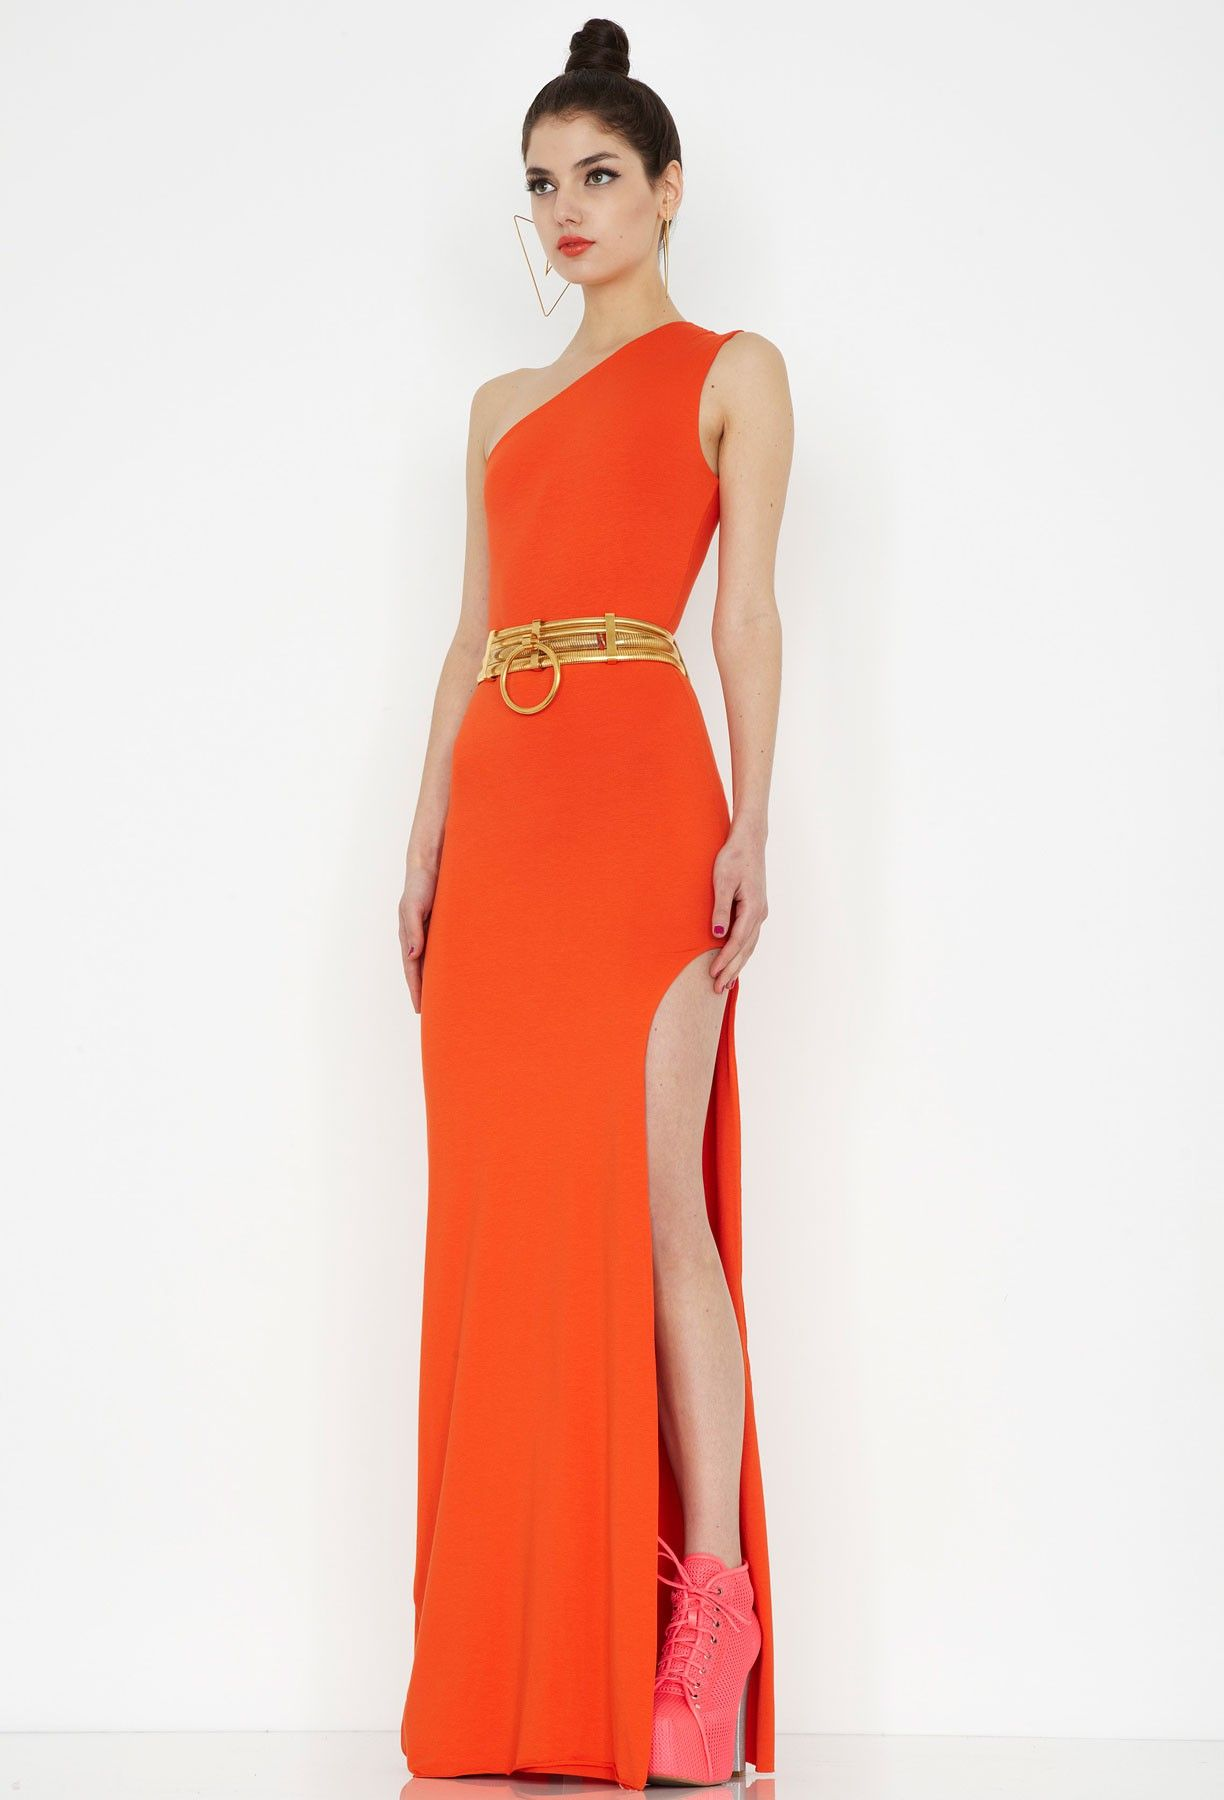 new_hutch_maxi_dress_orange | Orange Maxi Dress | Pinterest | Maxi ...